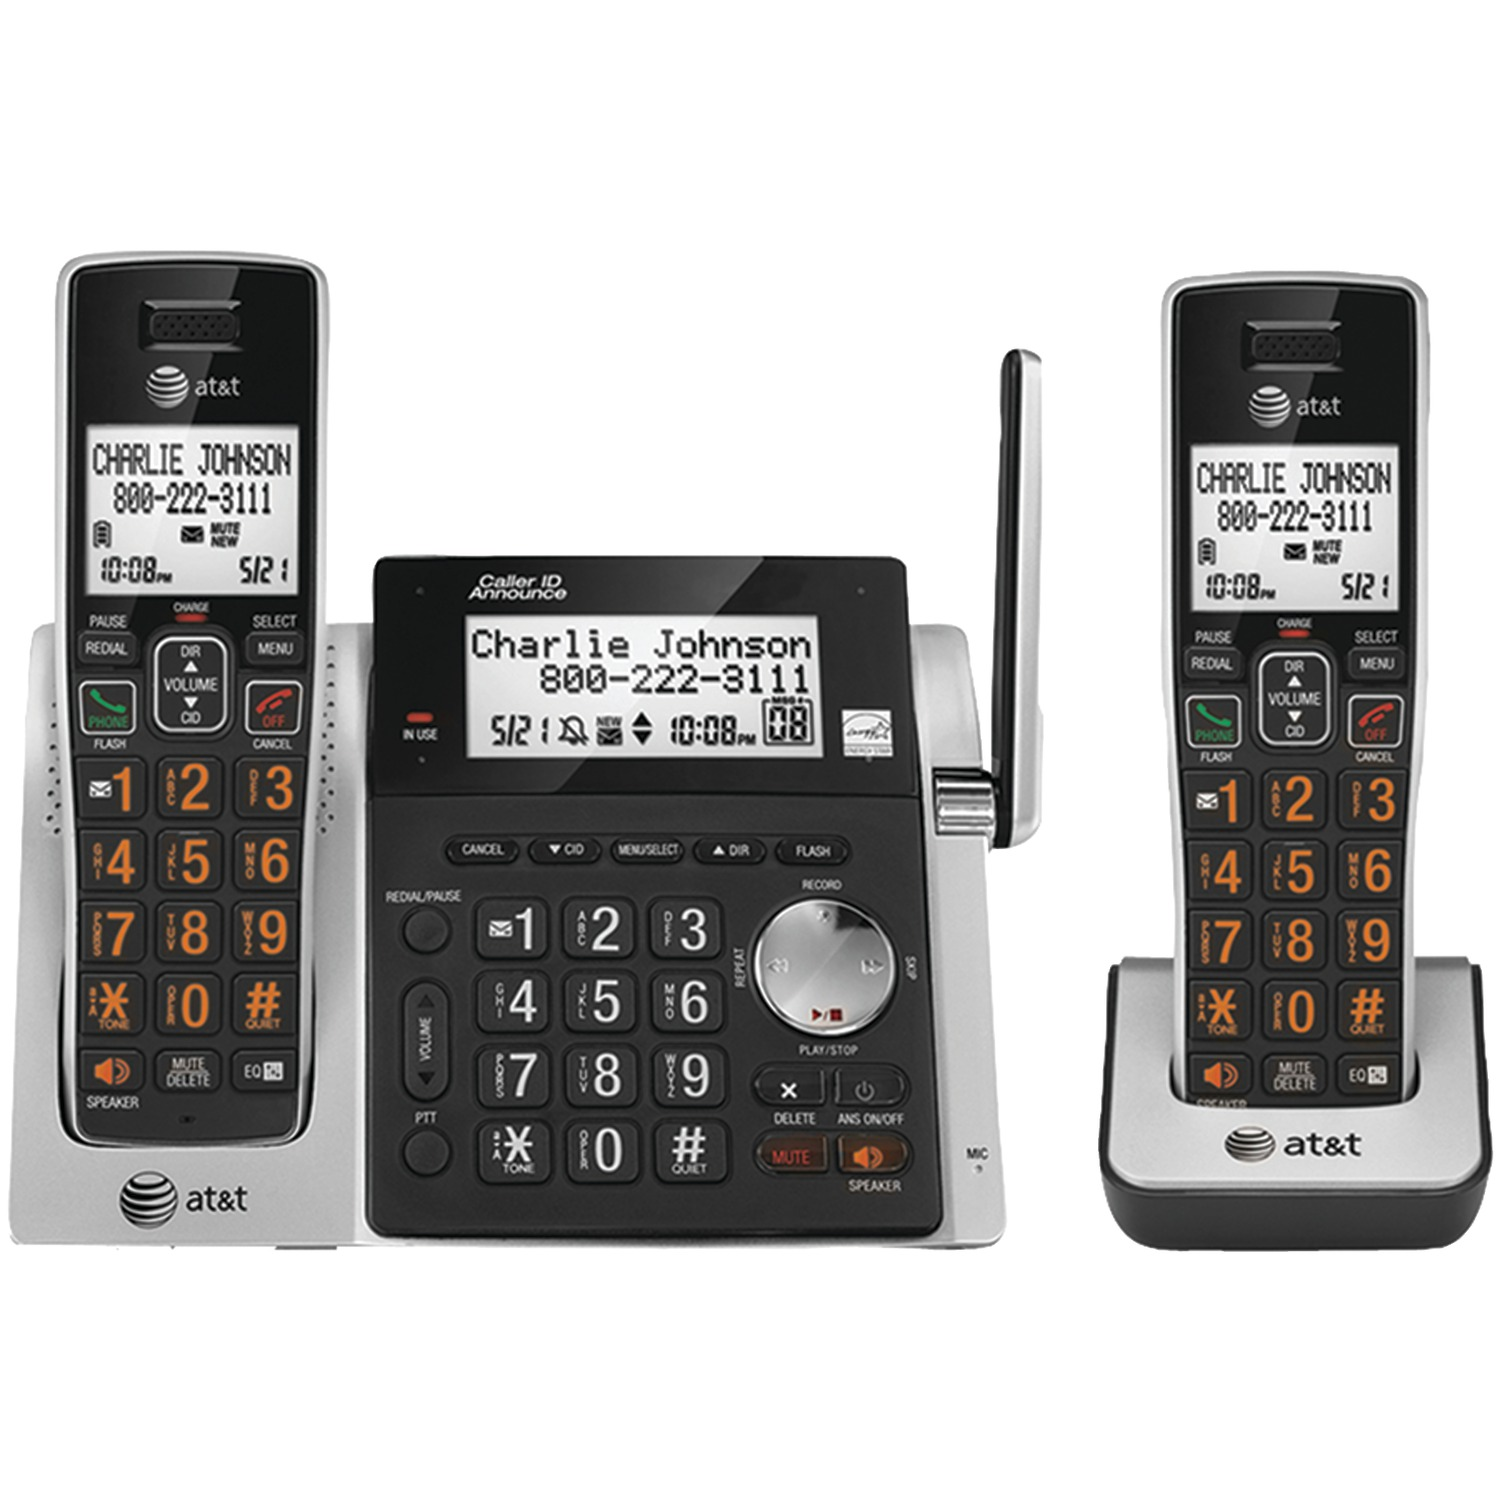 AT ATTCL83213 Cordless Answering System With Dual Caller ID/Call Waiting (2-Handset System)